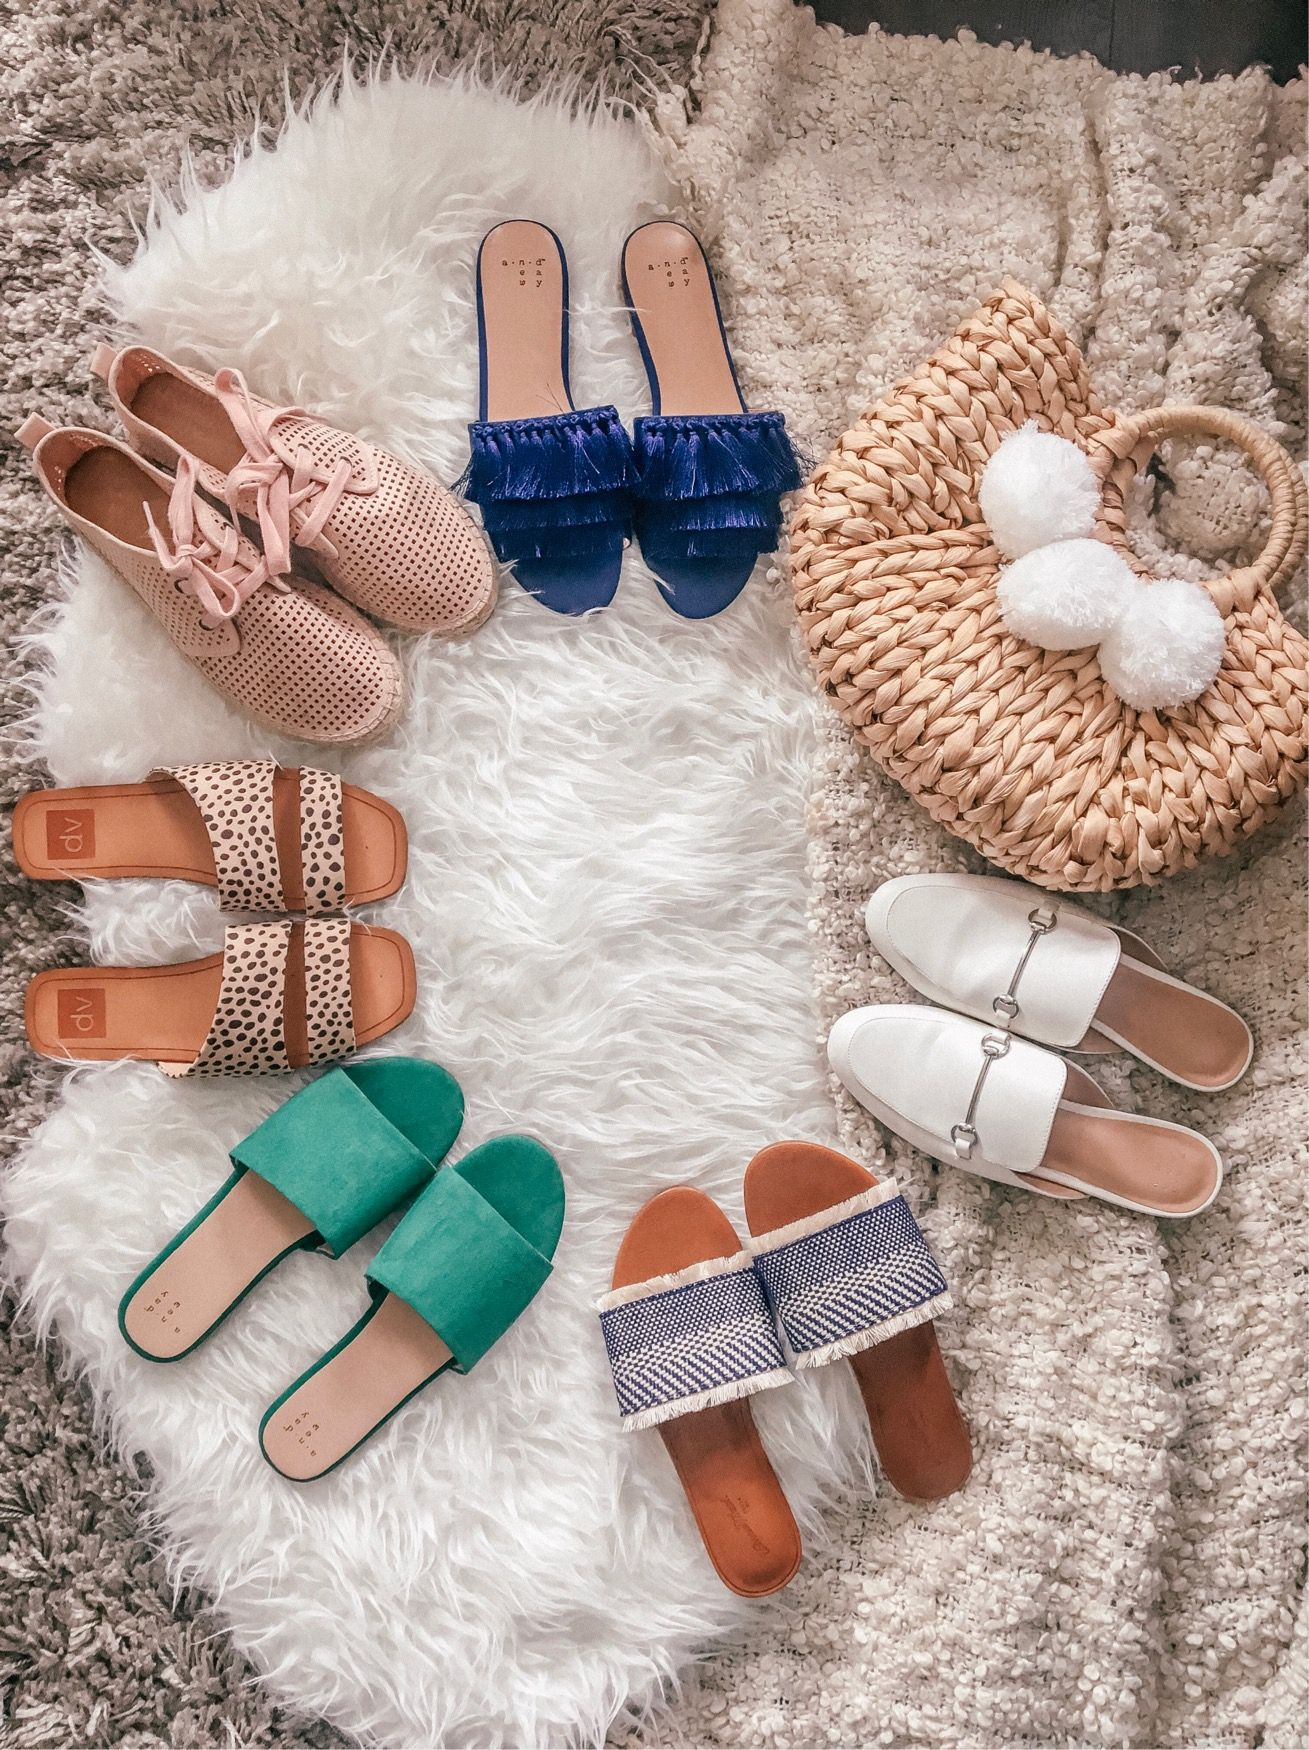 33 Awesome Sandals That're So Catchy & Stylish - summer sandals #sandals #shoes